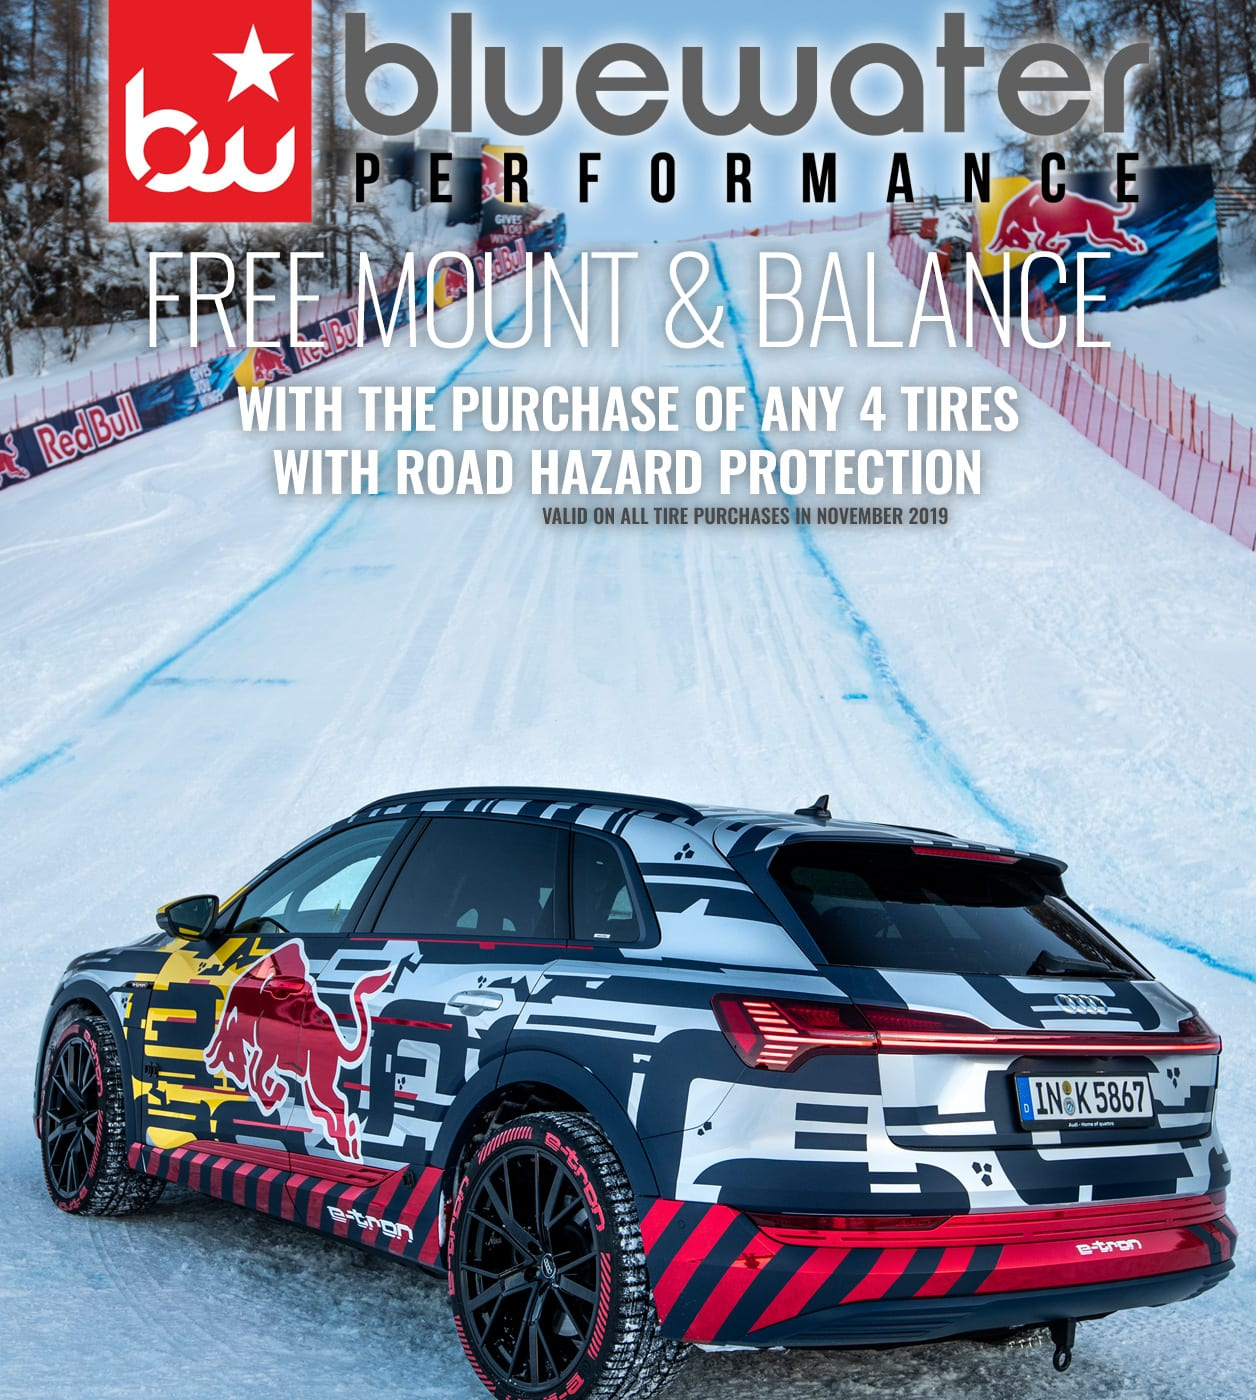 FREE Mount & Balance with Purchase of Any 4 Tires with Road Hazard Protection